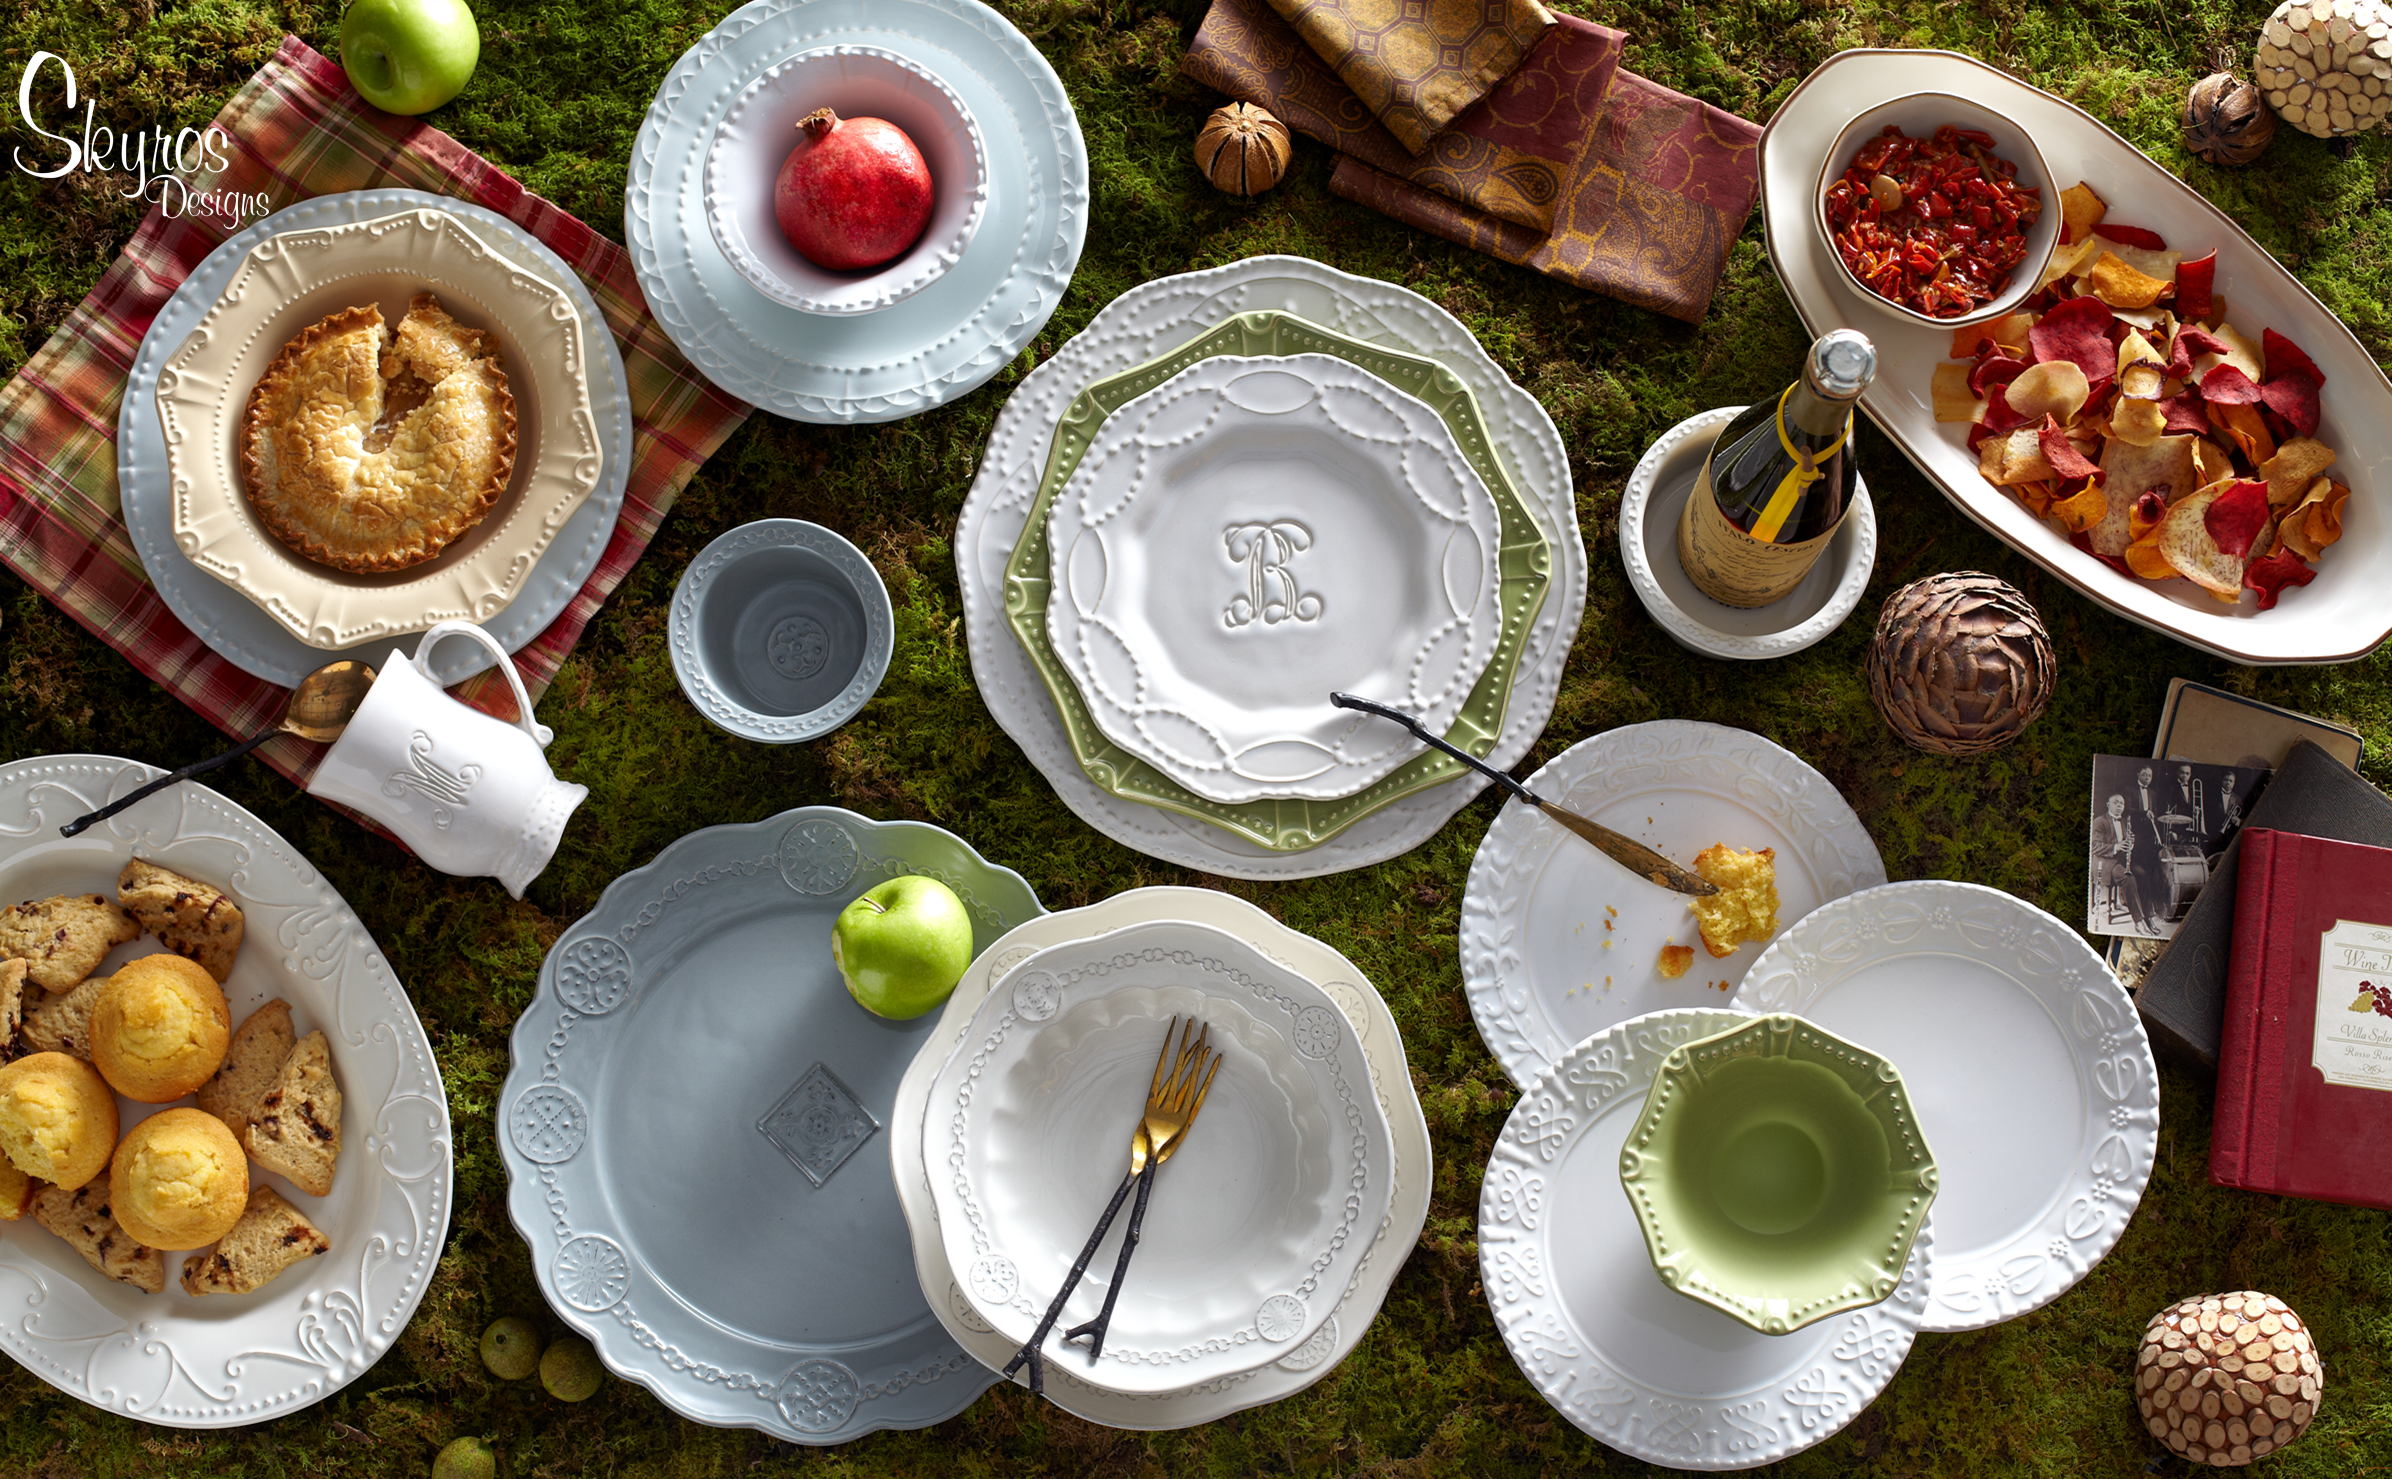 Skyros Designs Dinnerware